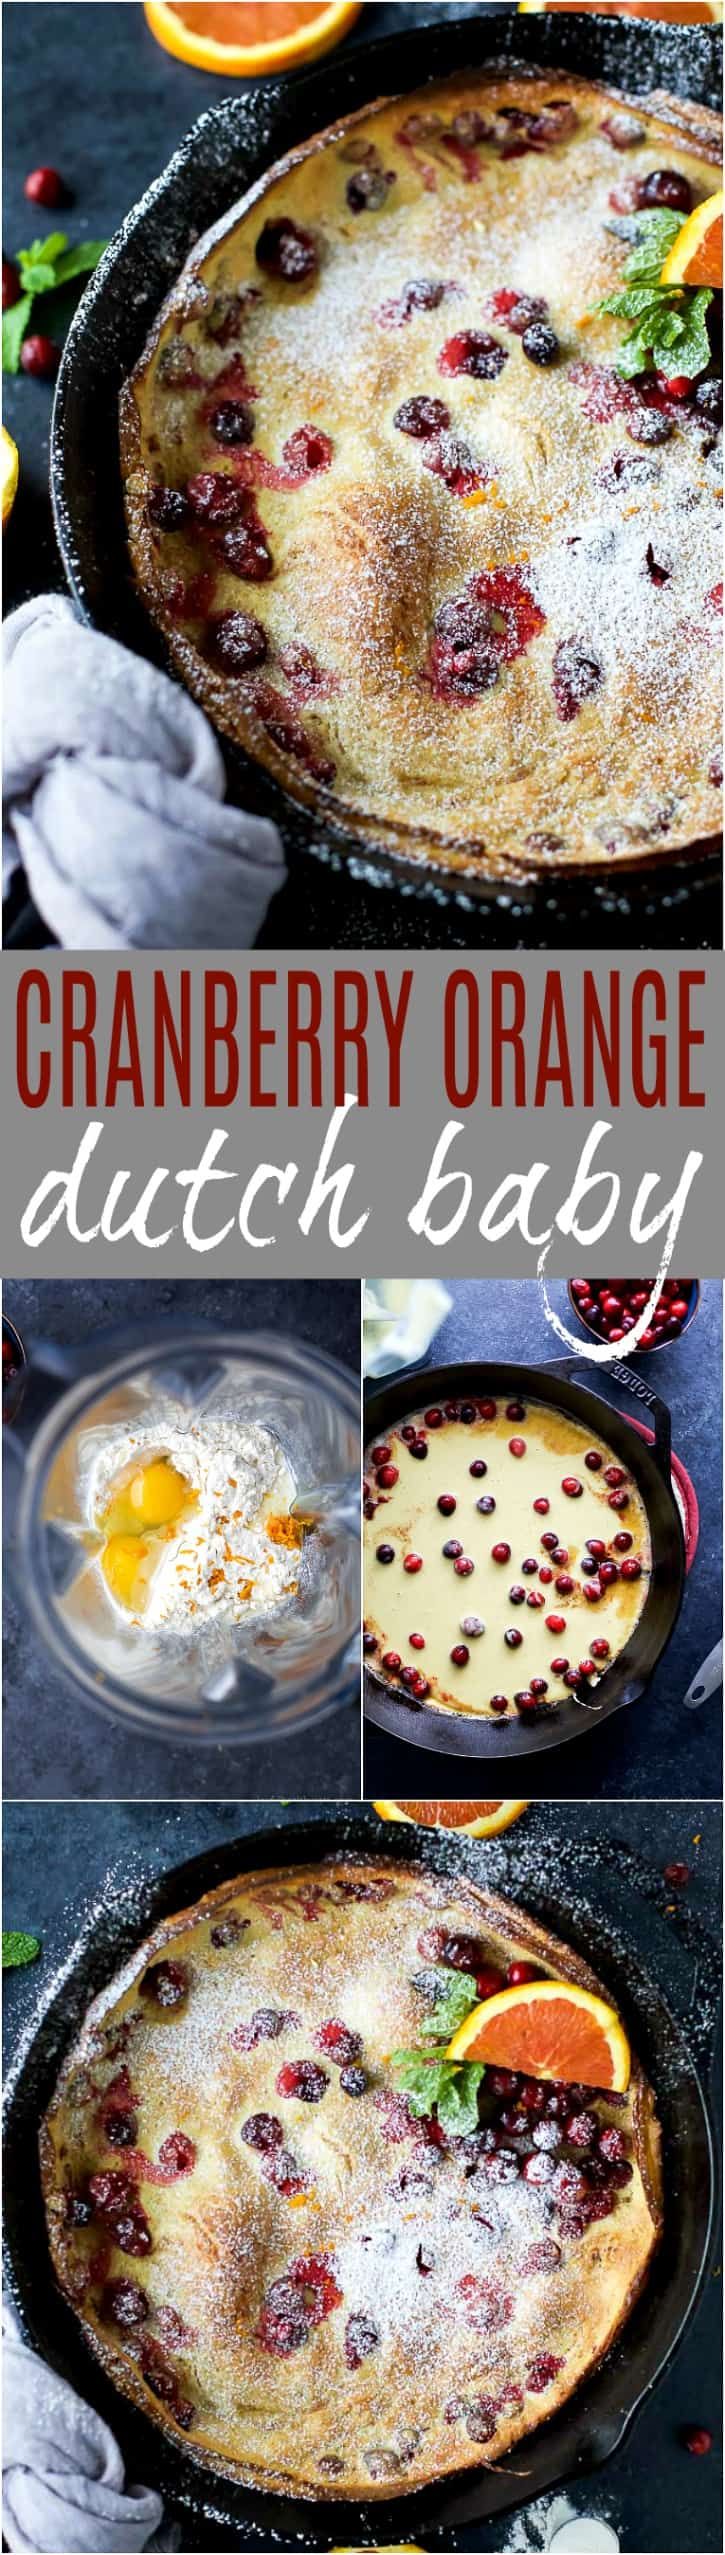 Easy Cranberry Orange Dutch Baby baked till crispy on the outside and fluffy on the inside. A stunning festive breakfast recipe that's perfect for the holidays!